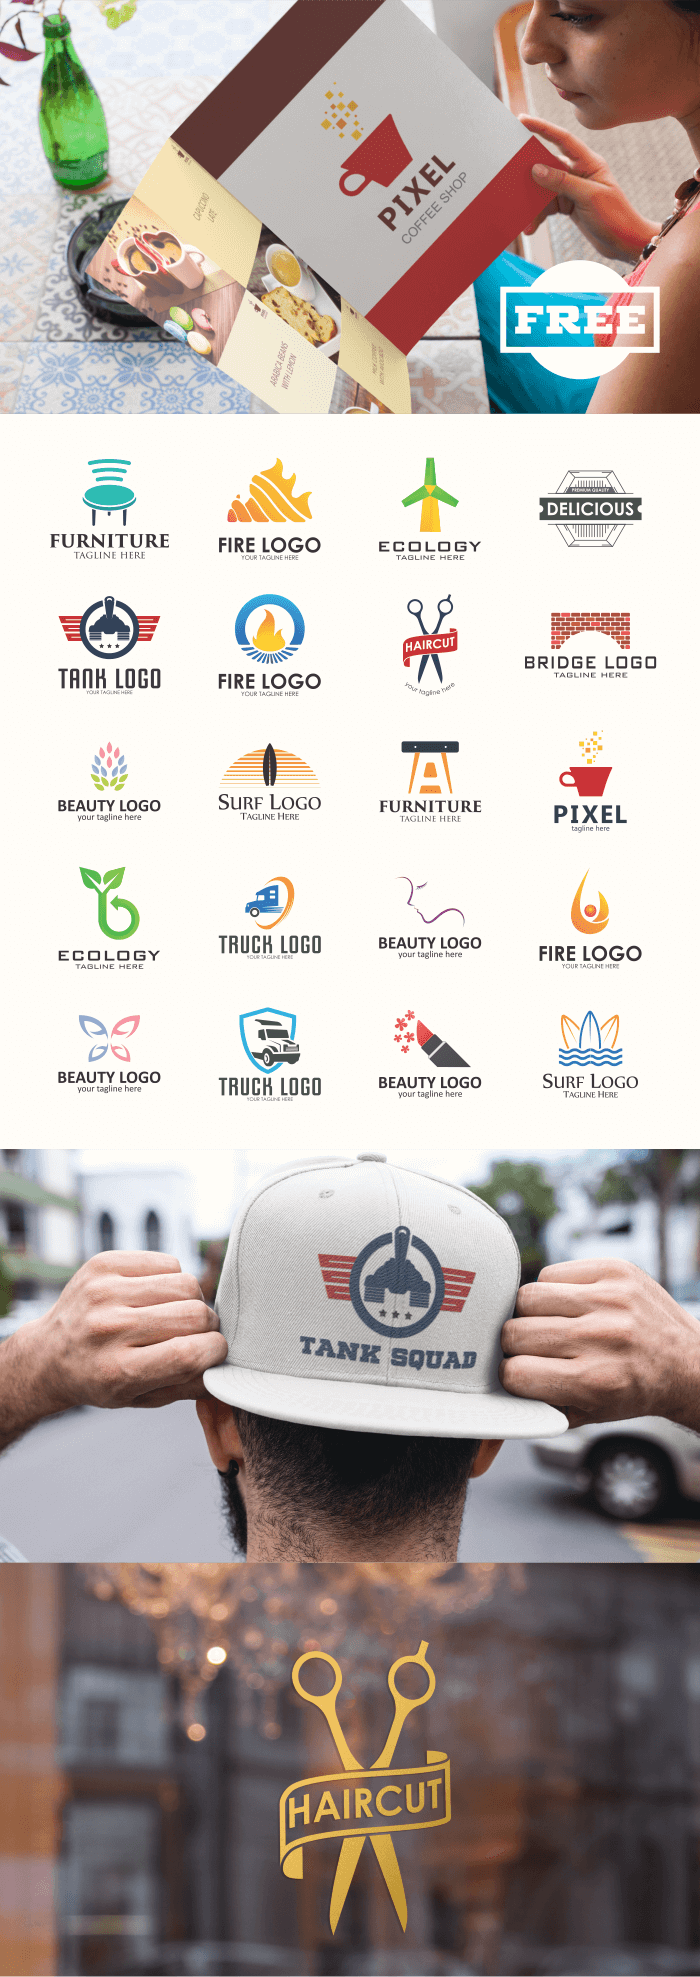 FREE - 20 Multi-Purpose Logo Design Collection